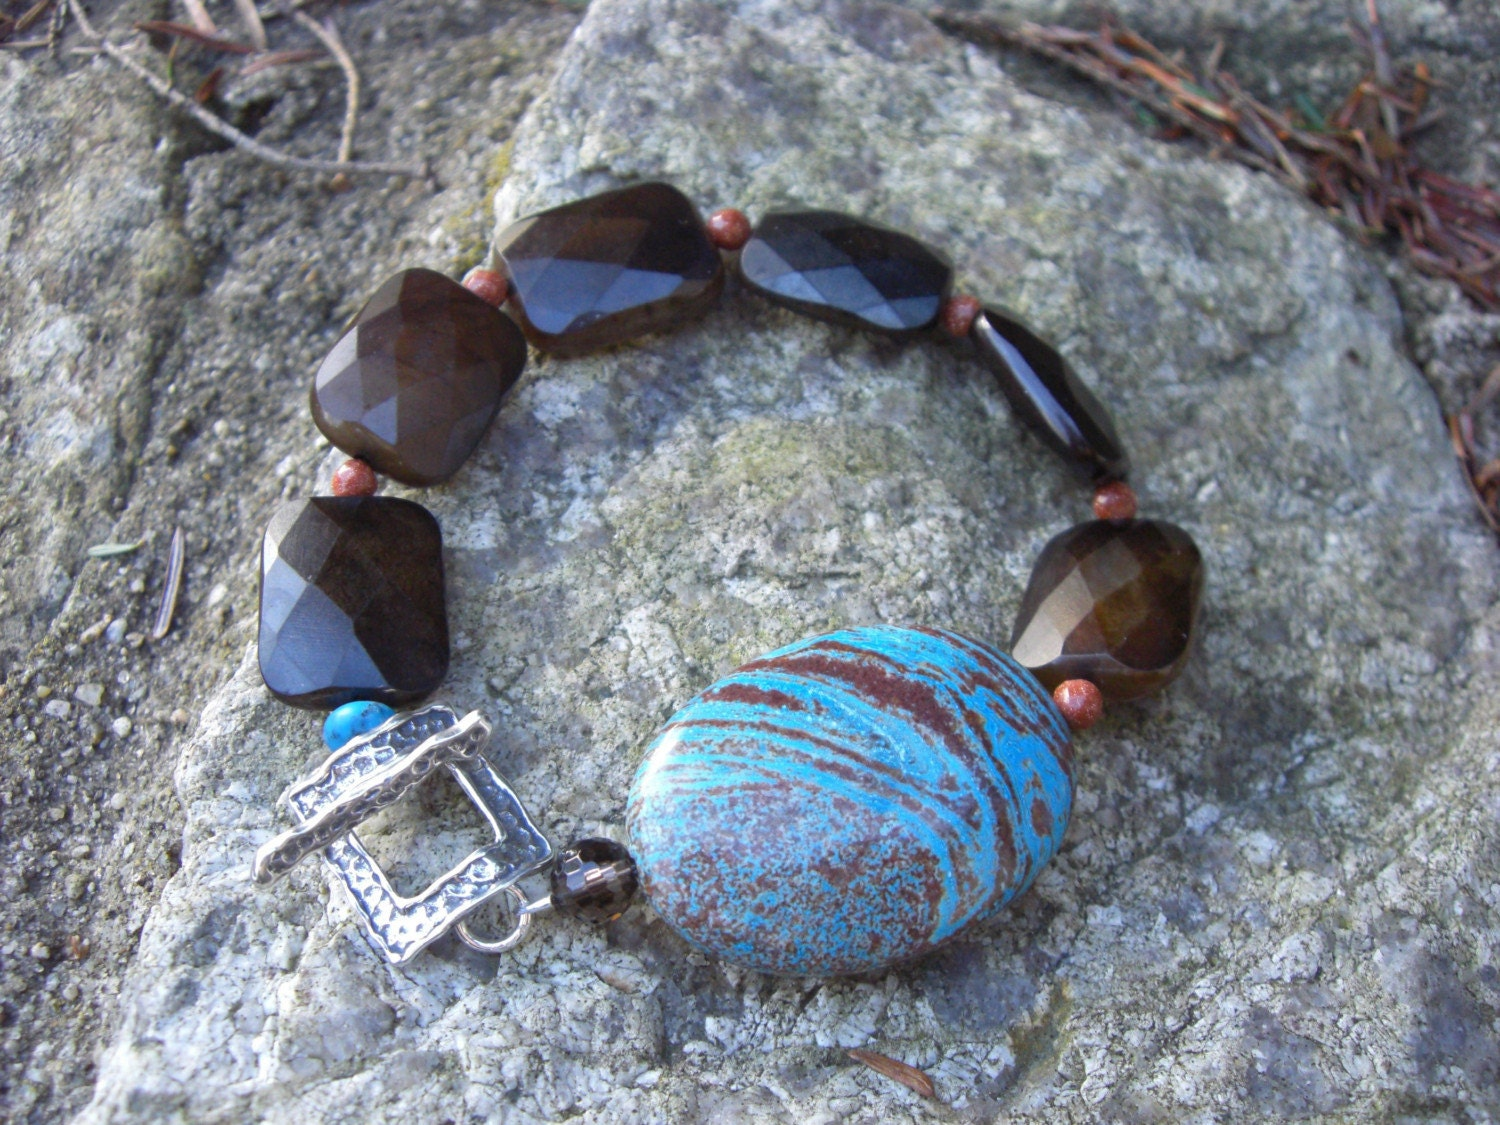 HARBOR BRACELET, BLUE JASPER OVAL, JADE, BLOODSTONE, HAMMERED SILVER TOGGLE